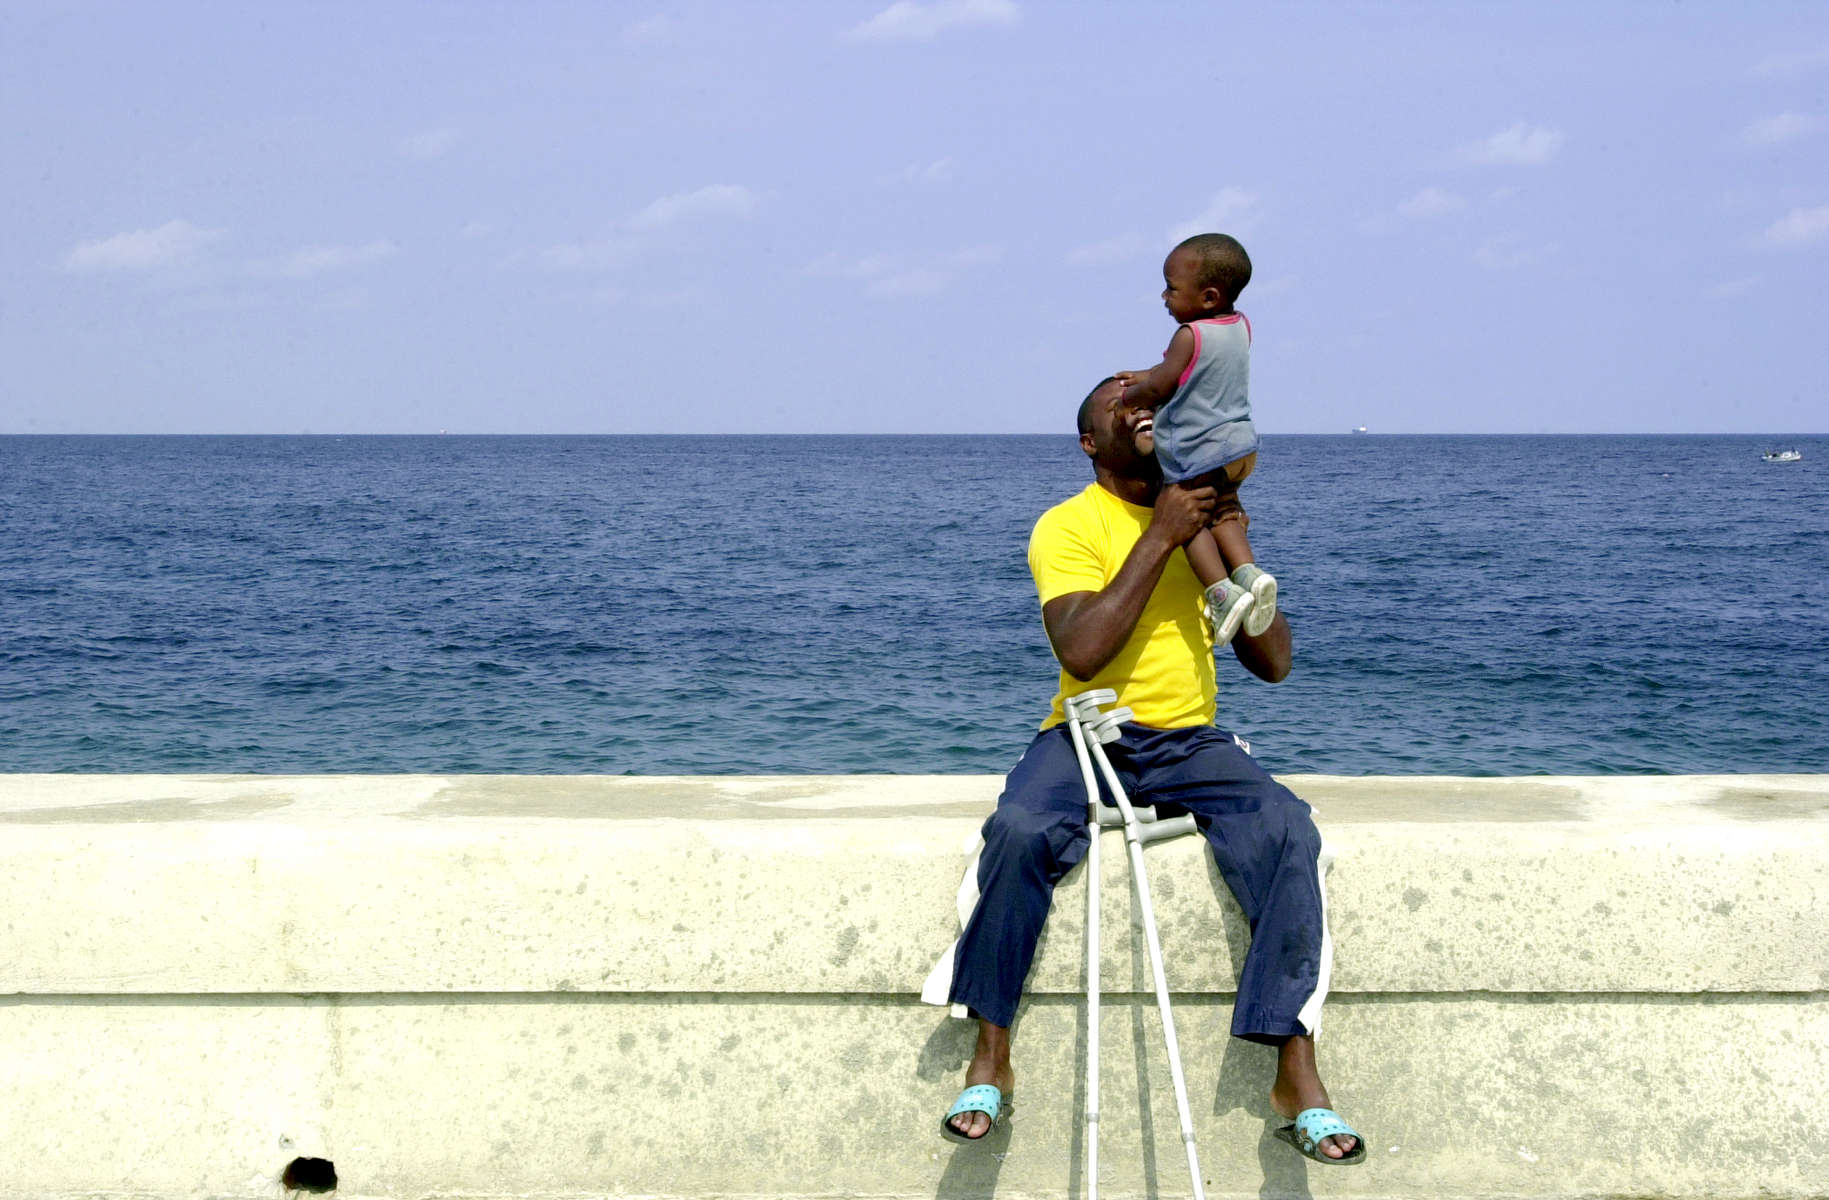 A man and child play together along Havana, Cuba's Malécon, a sea wall that runs along the city's coast.